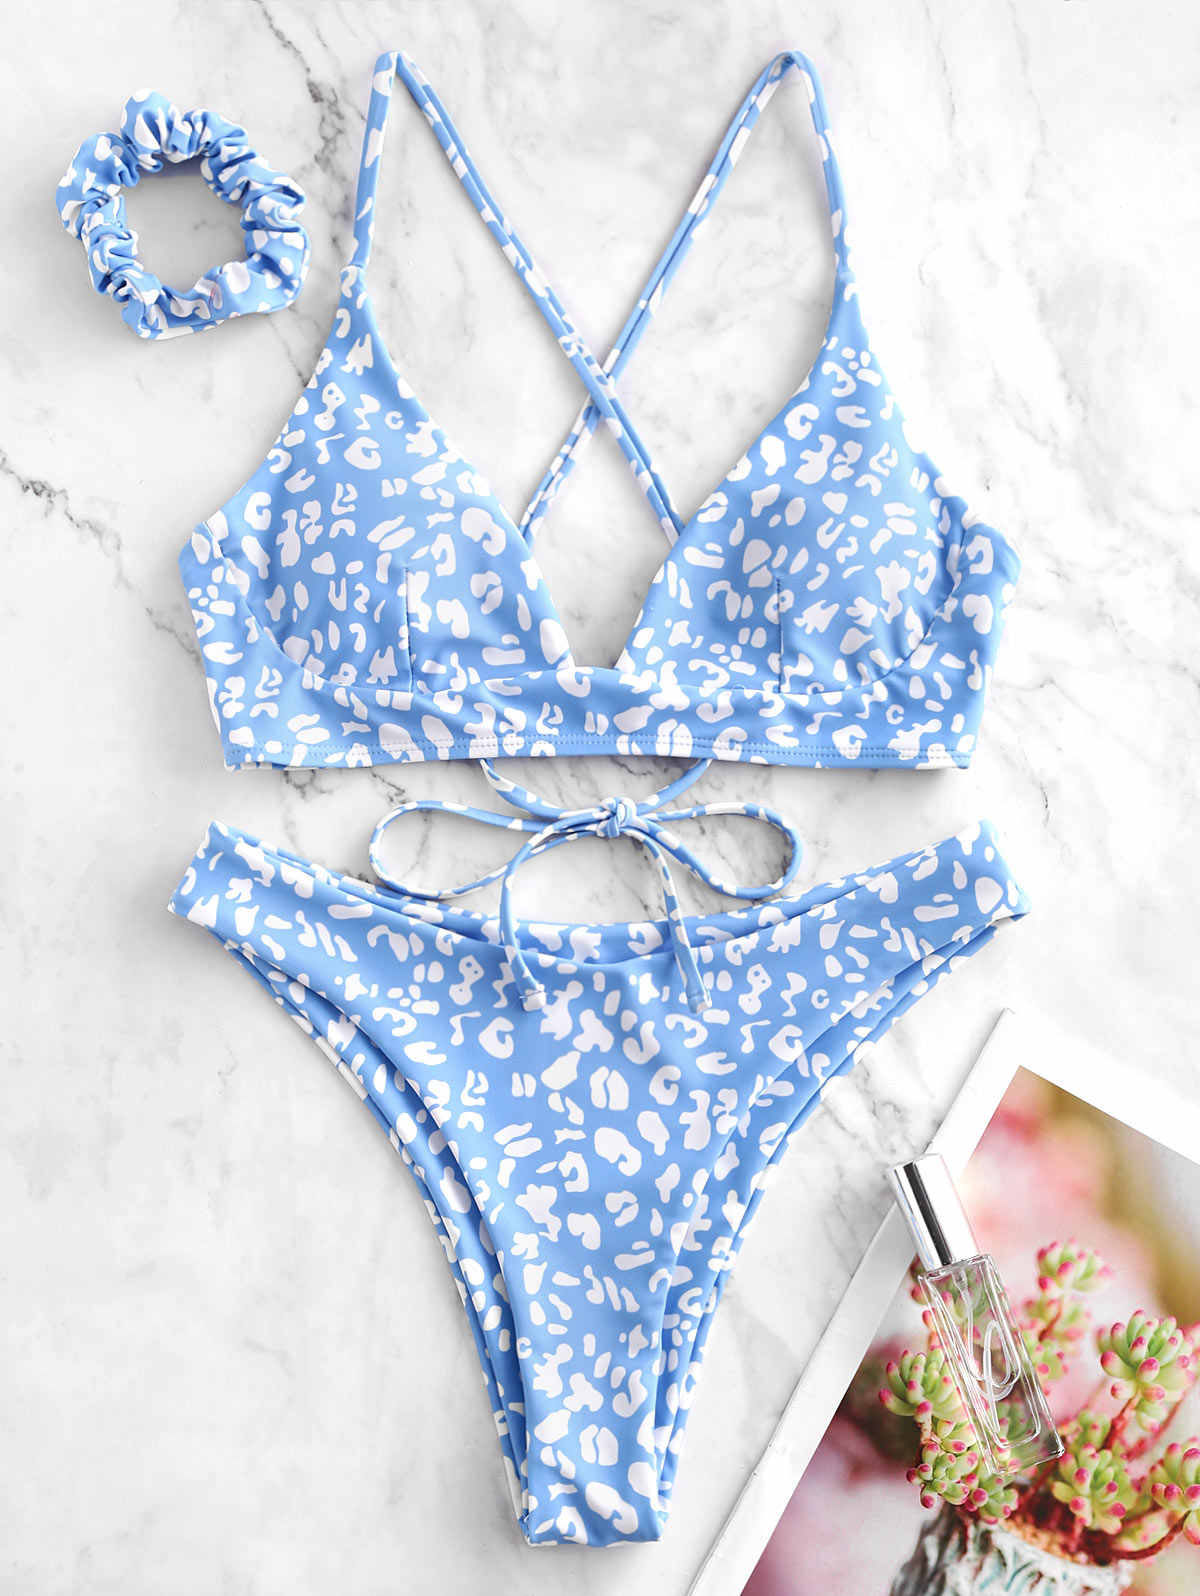 Zaful Leopard High Leg Criss Cross Bikini Swimwear Suits